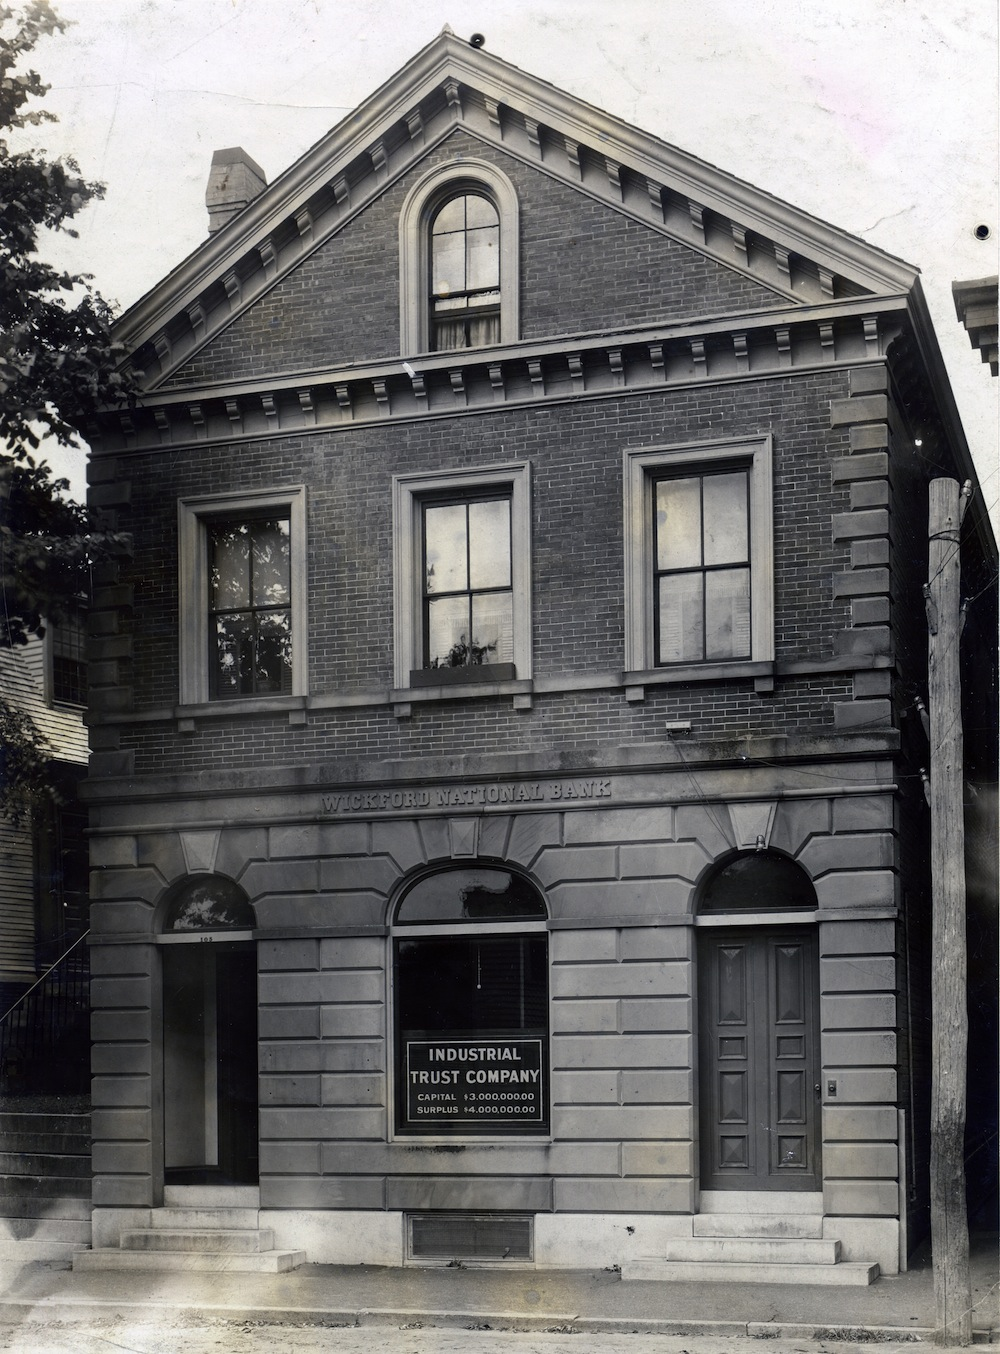 The Wickford National Bank building as an Industrial Trust branch, sometime after 1902.